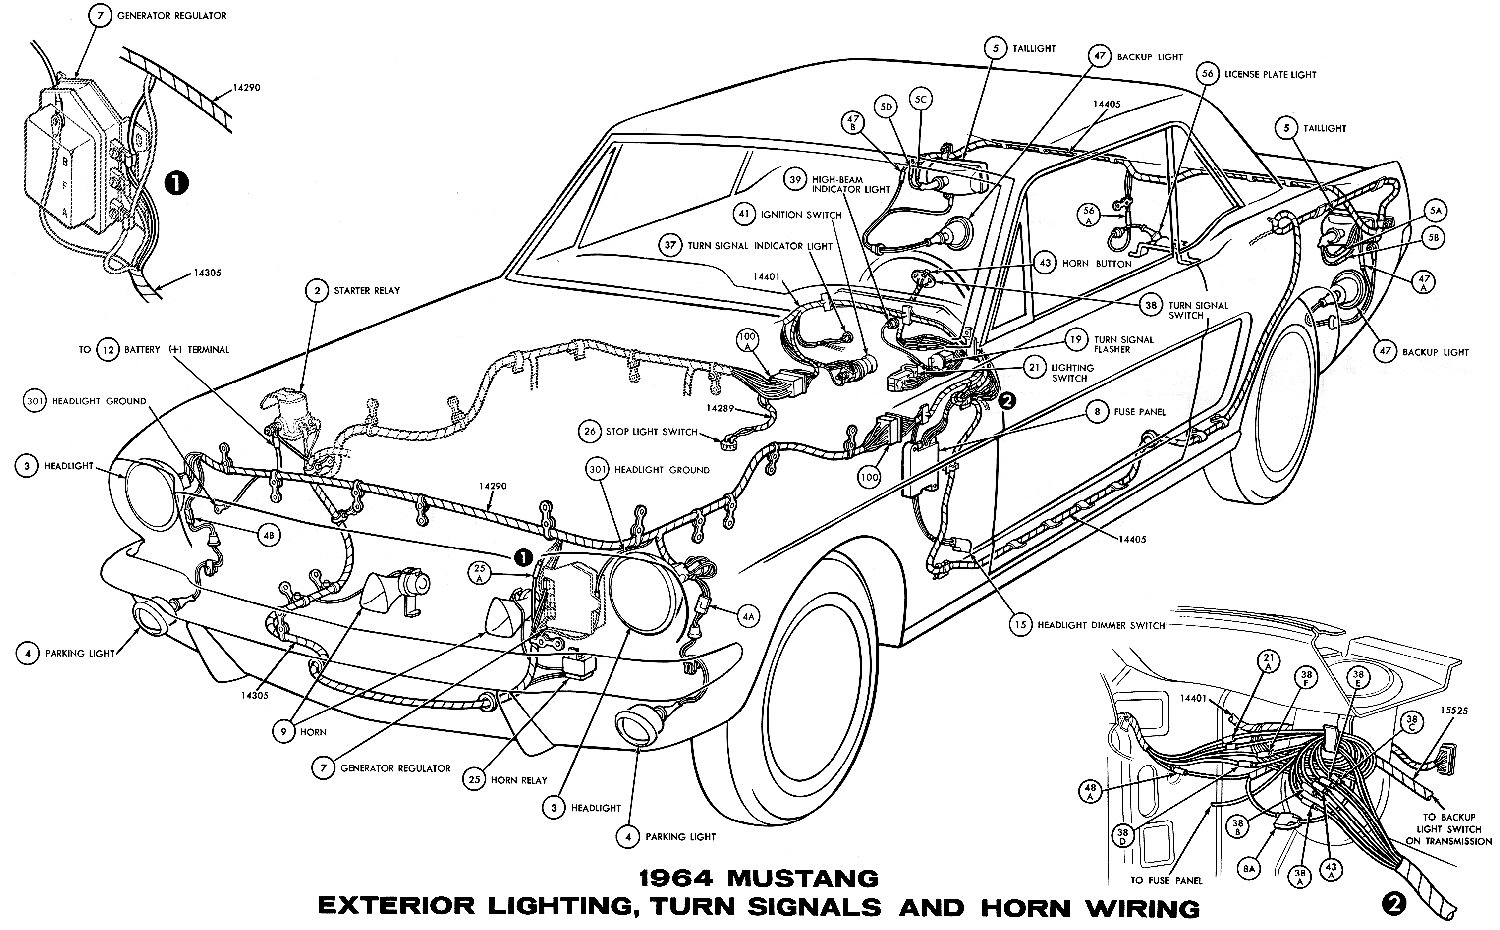 69 Chevelle Power Window Wiring Diagram in addition Chevy Horn Ring Installation Kit 1957 Bel Air   210 also 1970 Chevelle Horn Relay Wiring Diagram Diagram in addition P 0900c1528005cb6c together with How to. on 1966 chevelle horn relay location